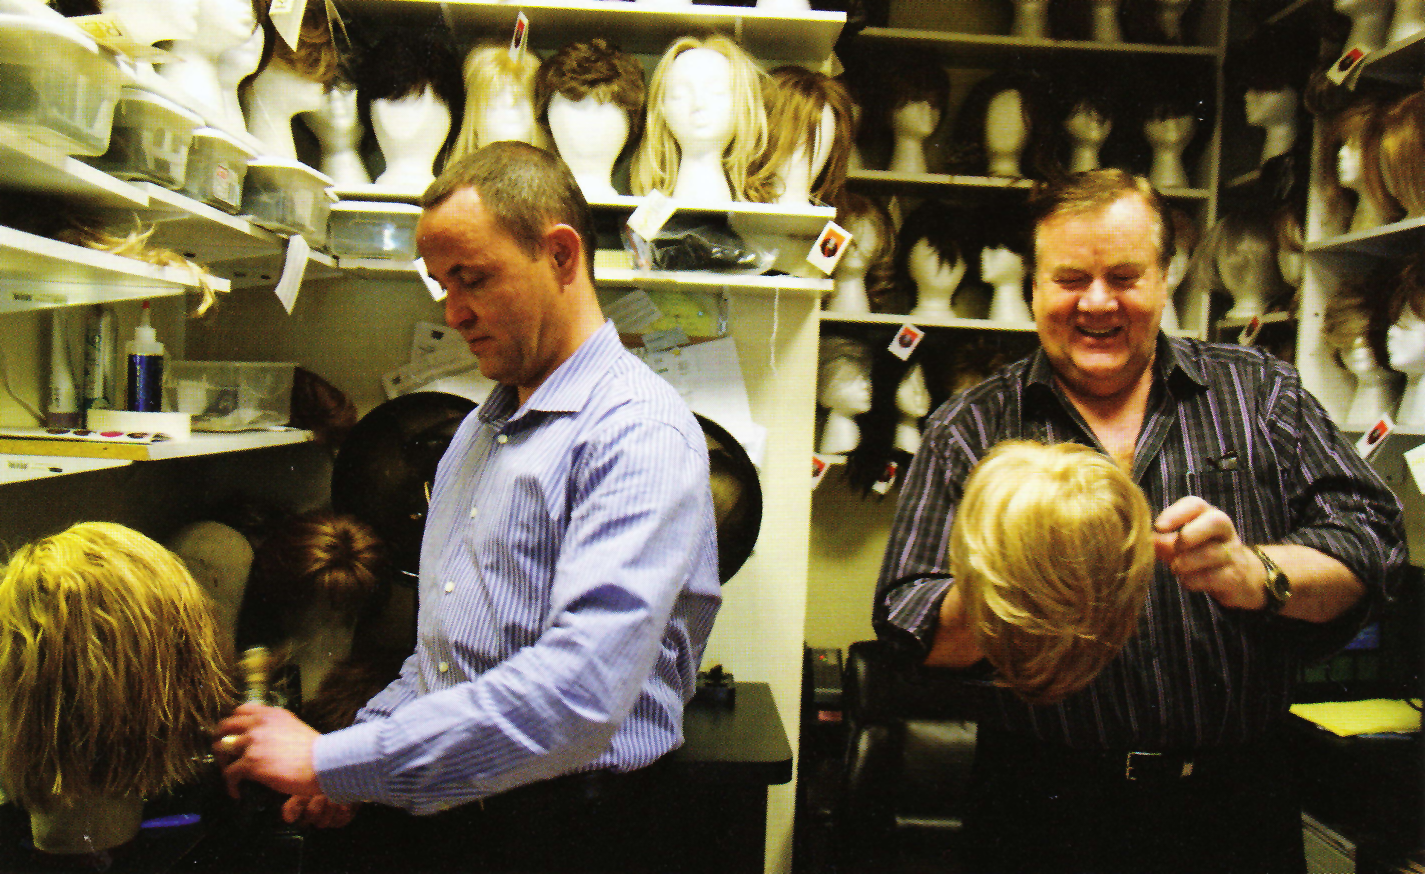 Picture: Hans Kalset (Left) and Eivind Bjerke in their wig studio.